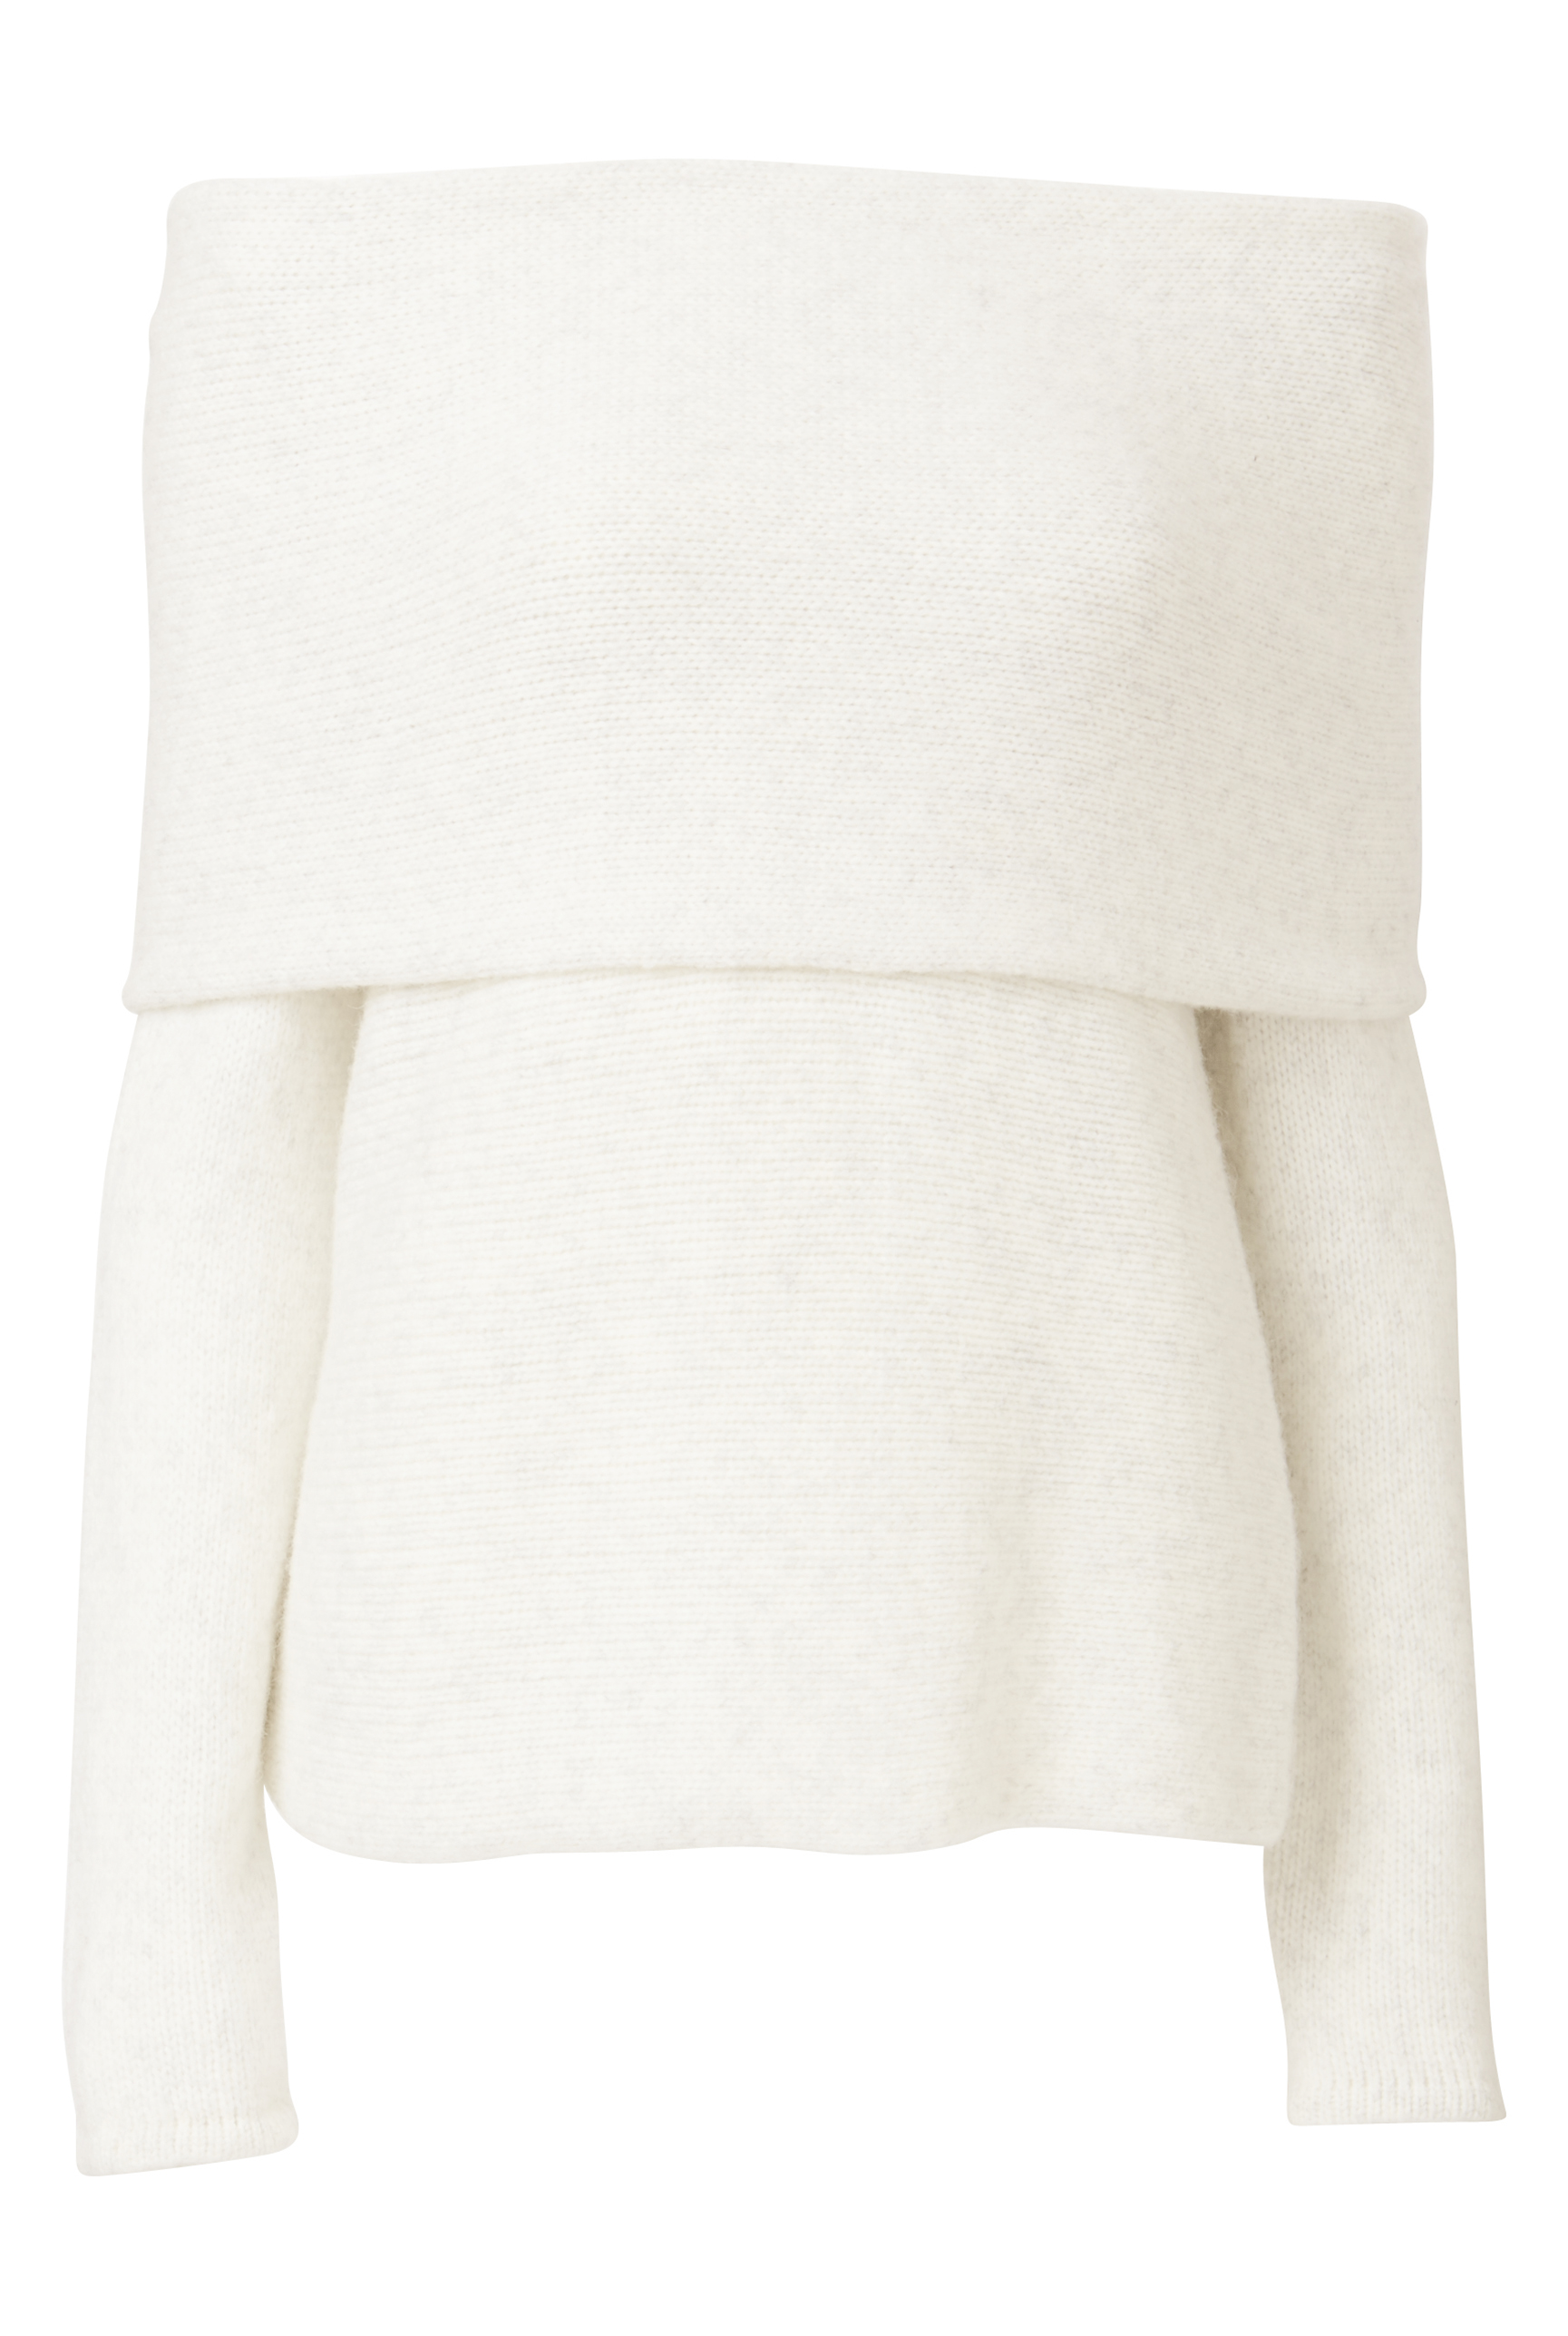 60194023_Witchery Fold Over Knit, RRP$169.90